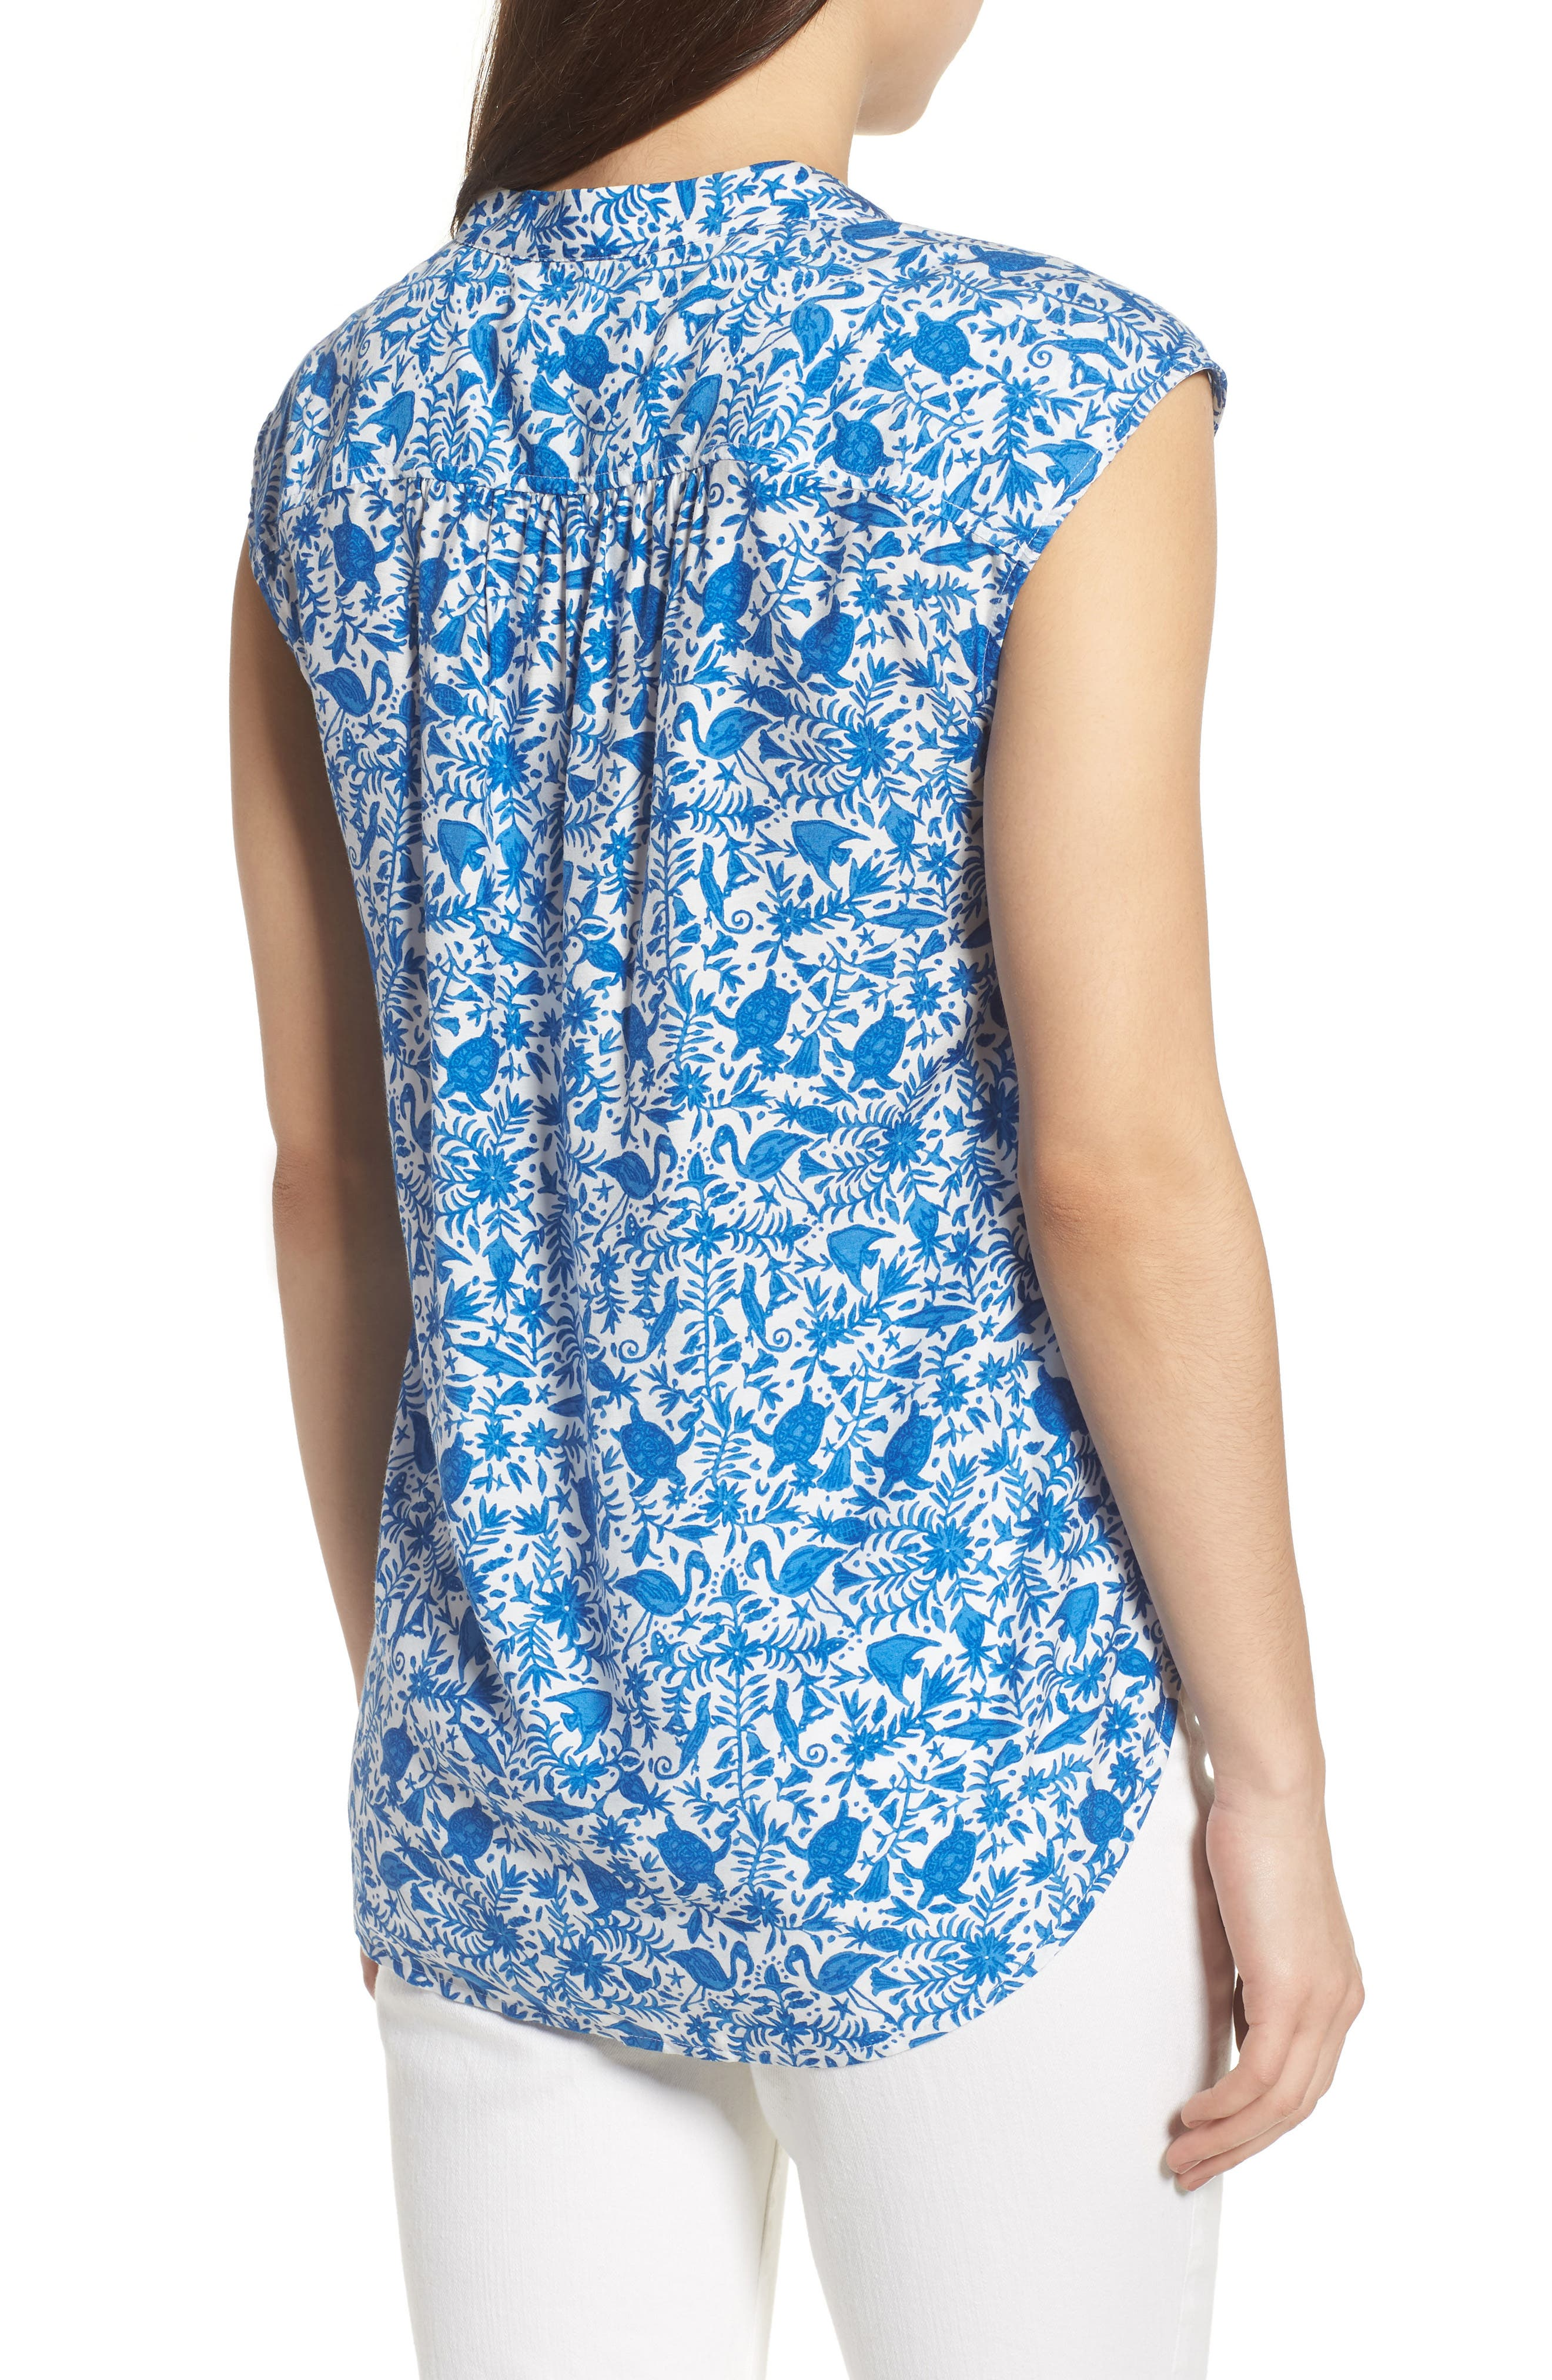 Bahamas Otomi Sleeveless Cotton Top,                             Alternate thumbnail 2, color,                             413